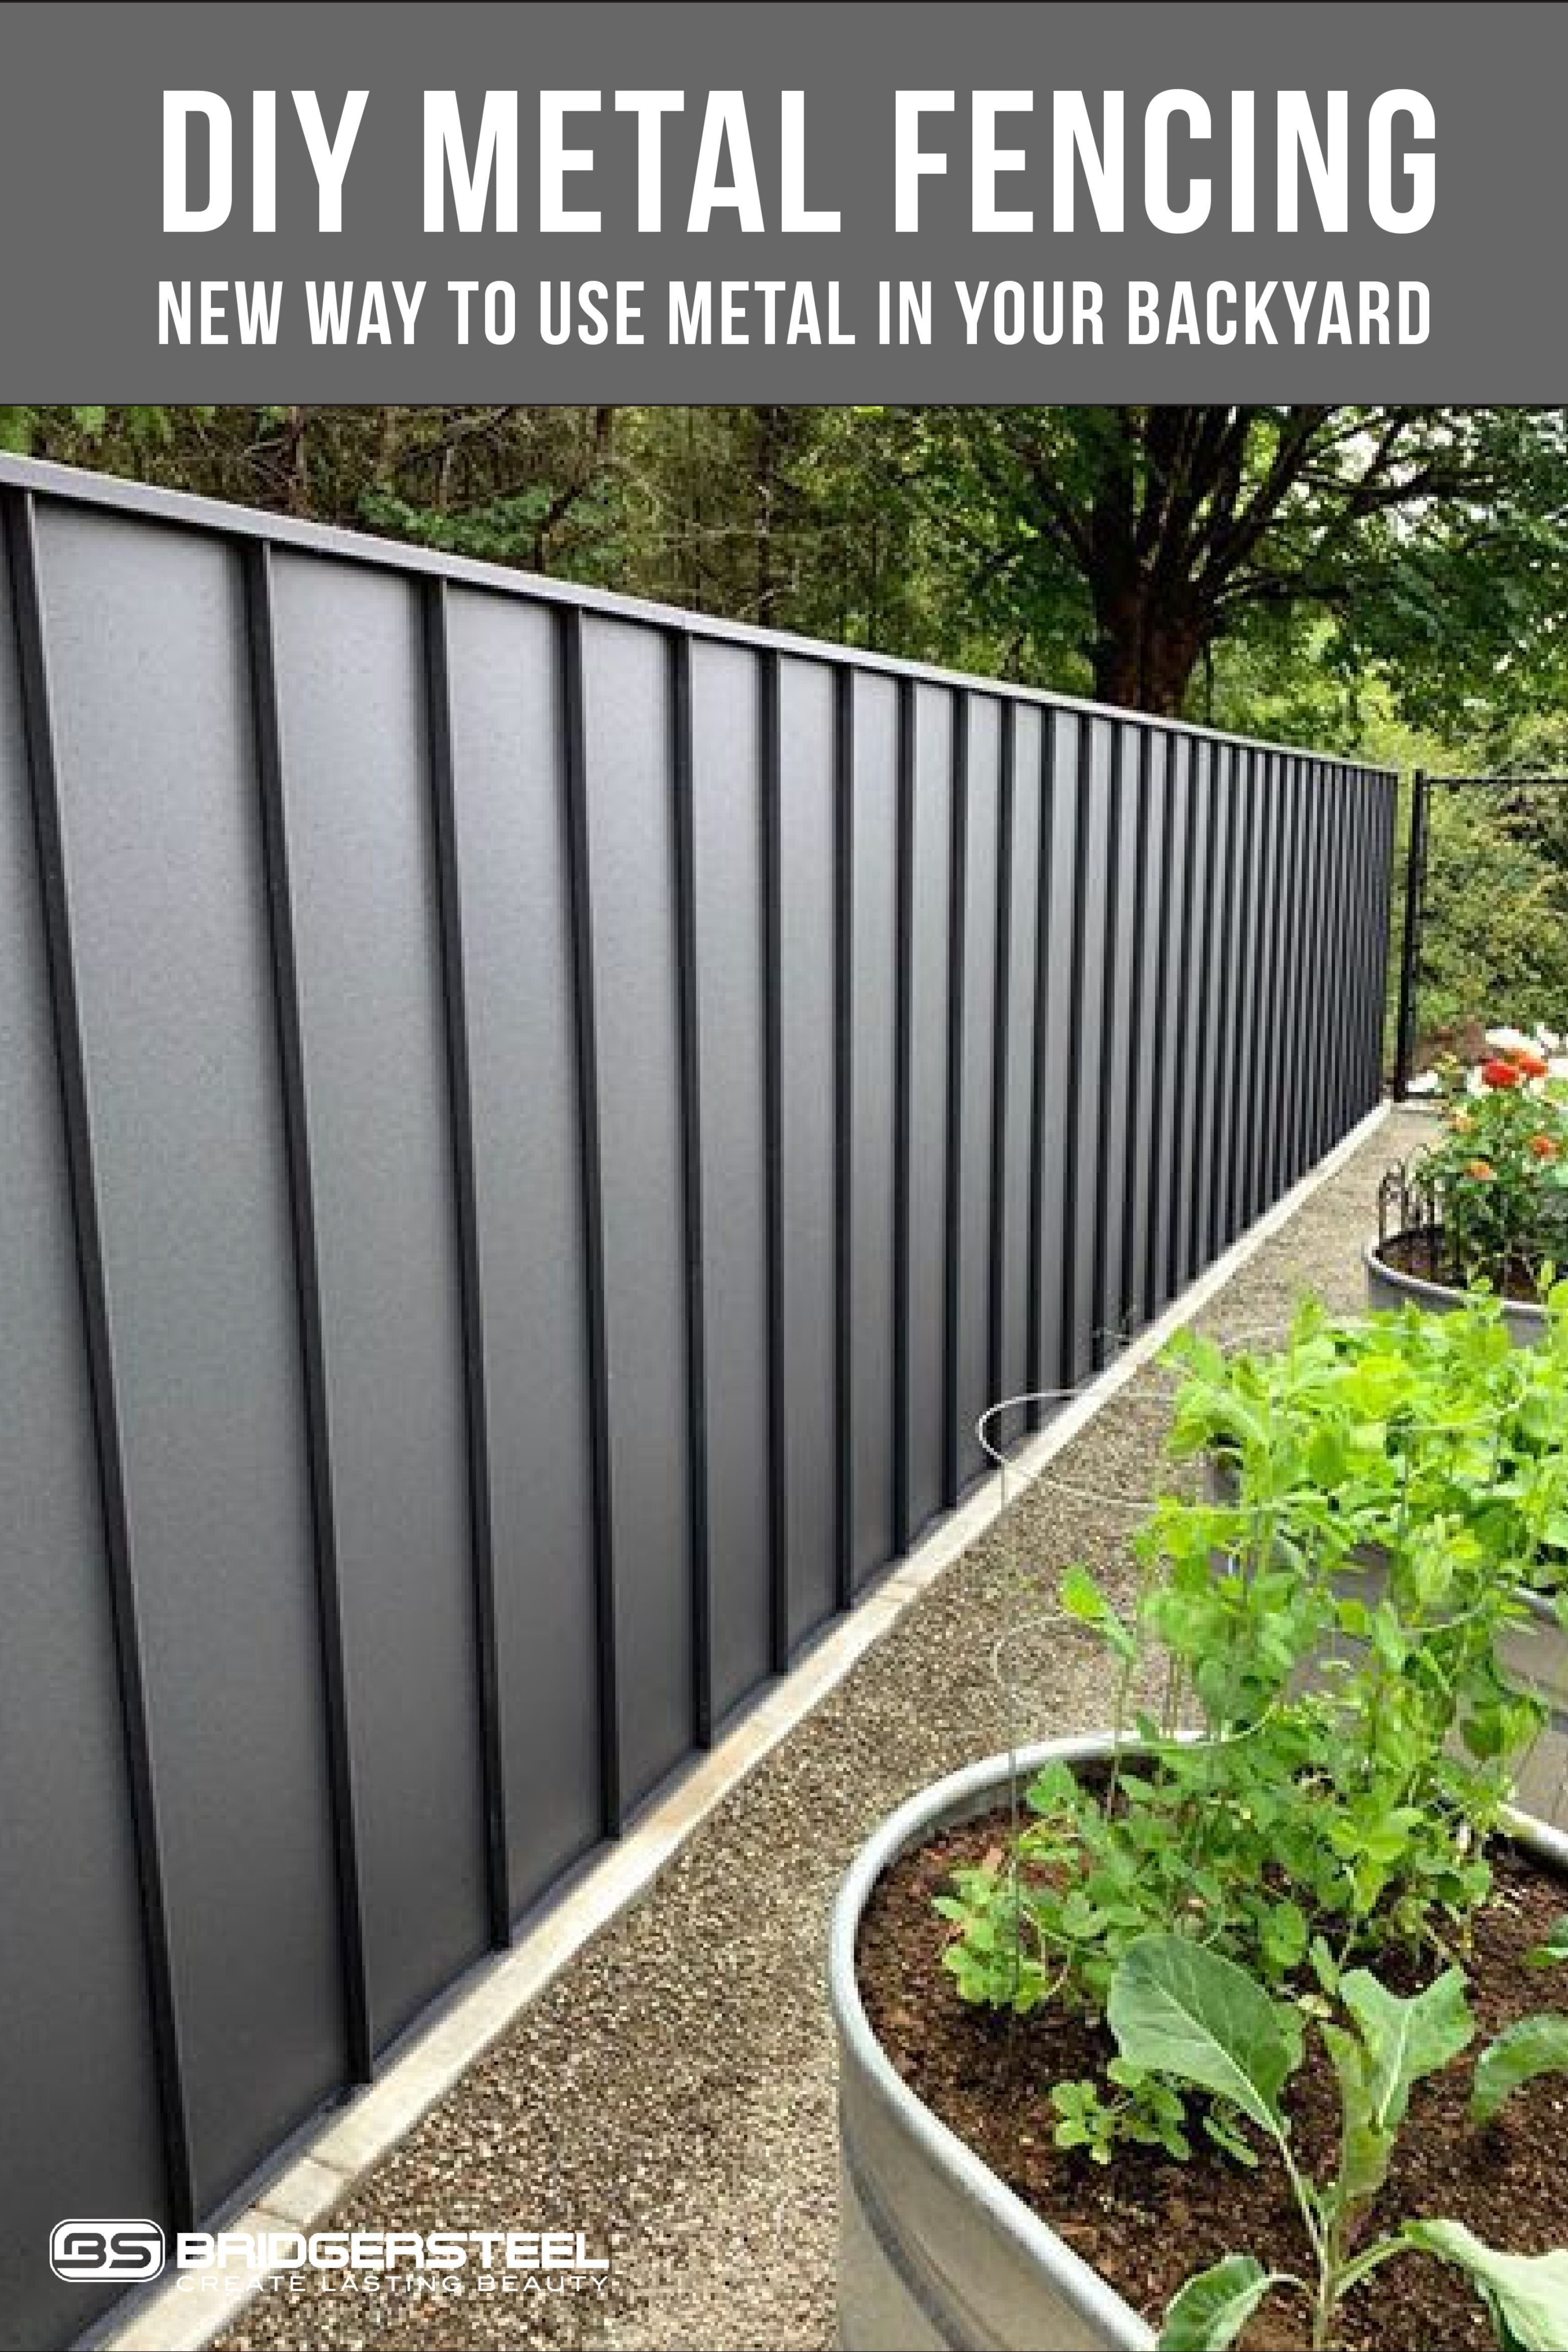 Modern Fence Sustainable Architecture Living Walls Green Roofs Architecture Metal Panel Systems Hav In 2020 Metal Garden Fencing Corrugated Metal Fence Backyard Fences